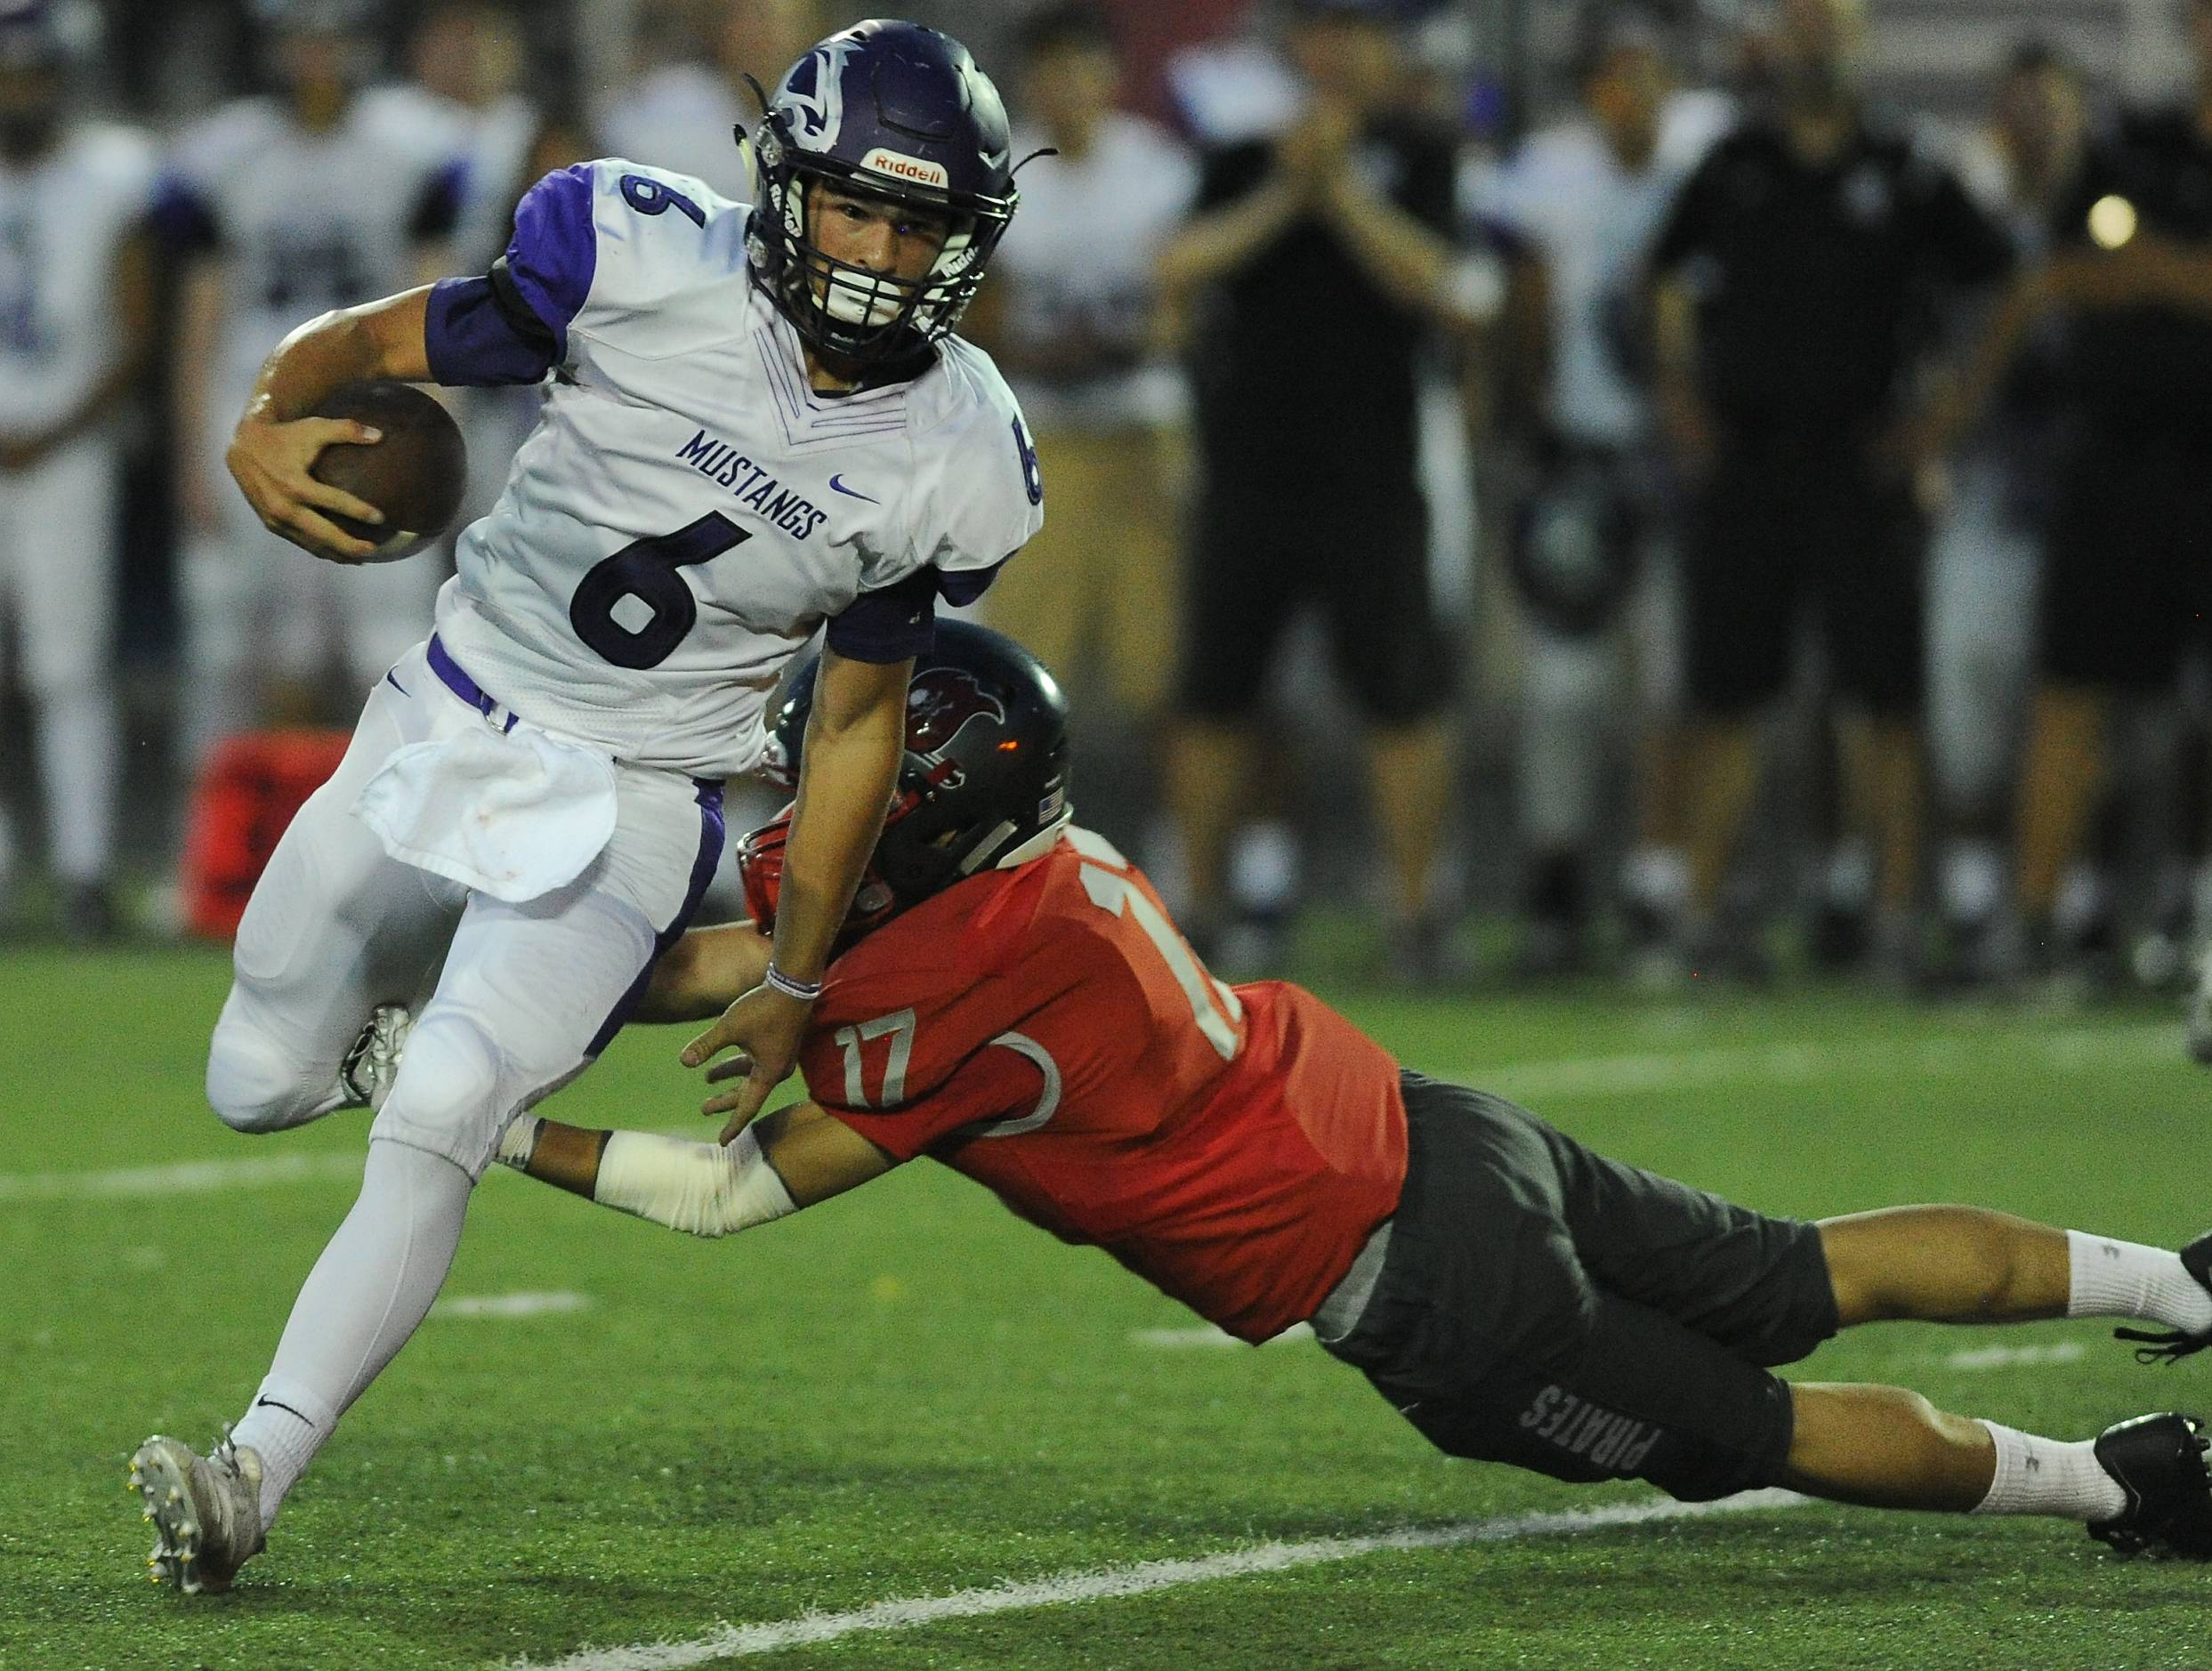 Rolling Meadows' Jordan Wiles picks up a first down by slipping past Palatine defenders in the first quarter of the Mustangs' 56-28 victory last week. Rolling Meadows has a Week 3 matchup with Highland Park at 7:30 p.m. Friday.